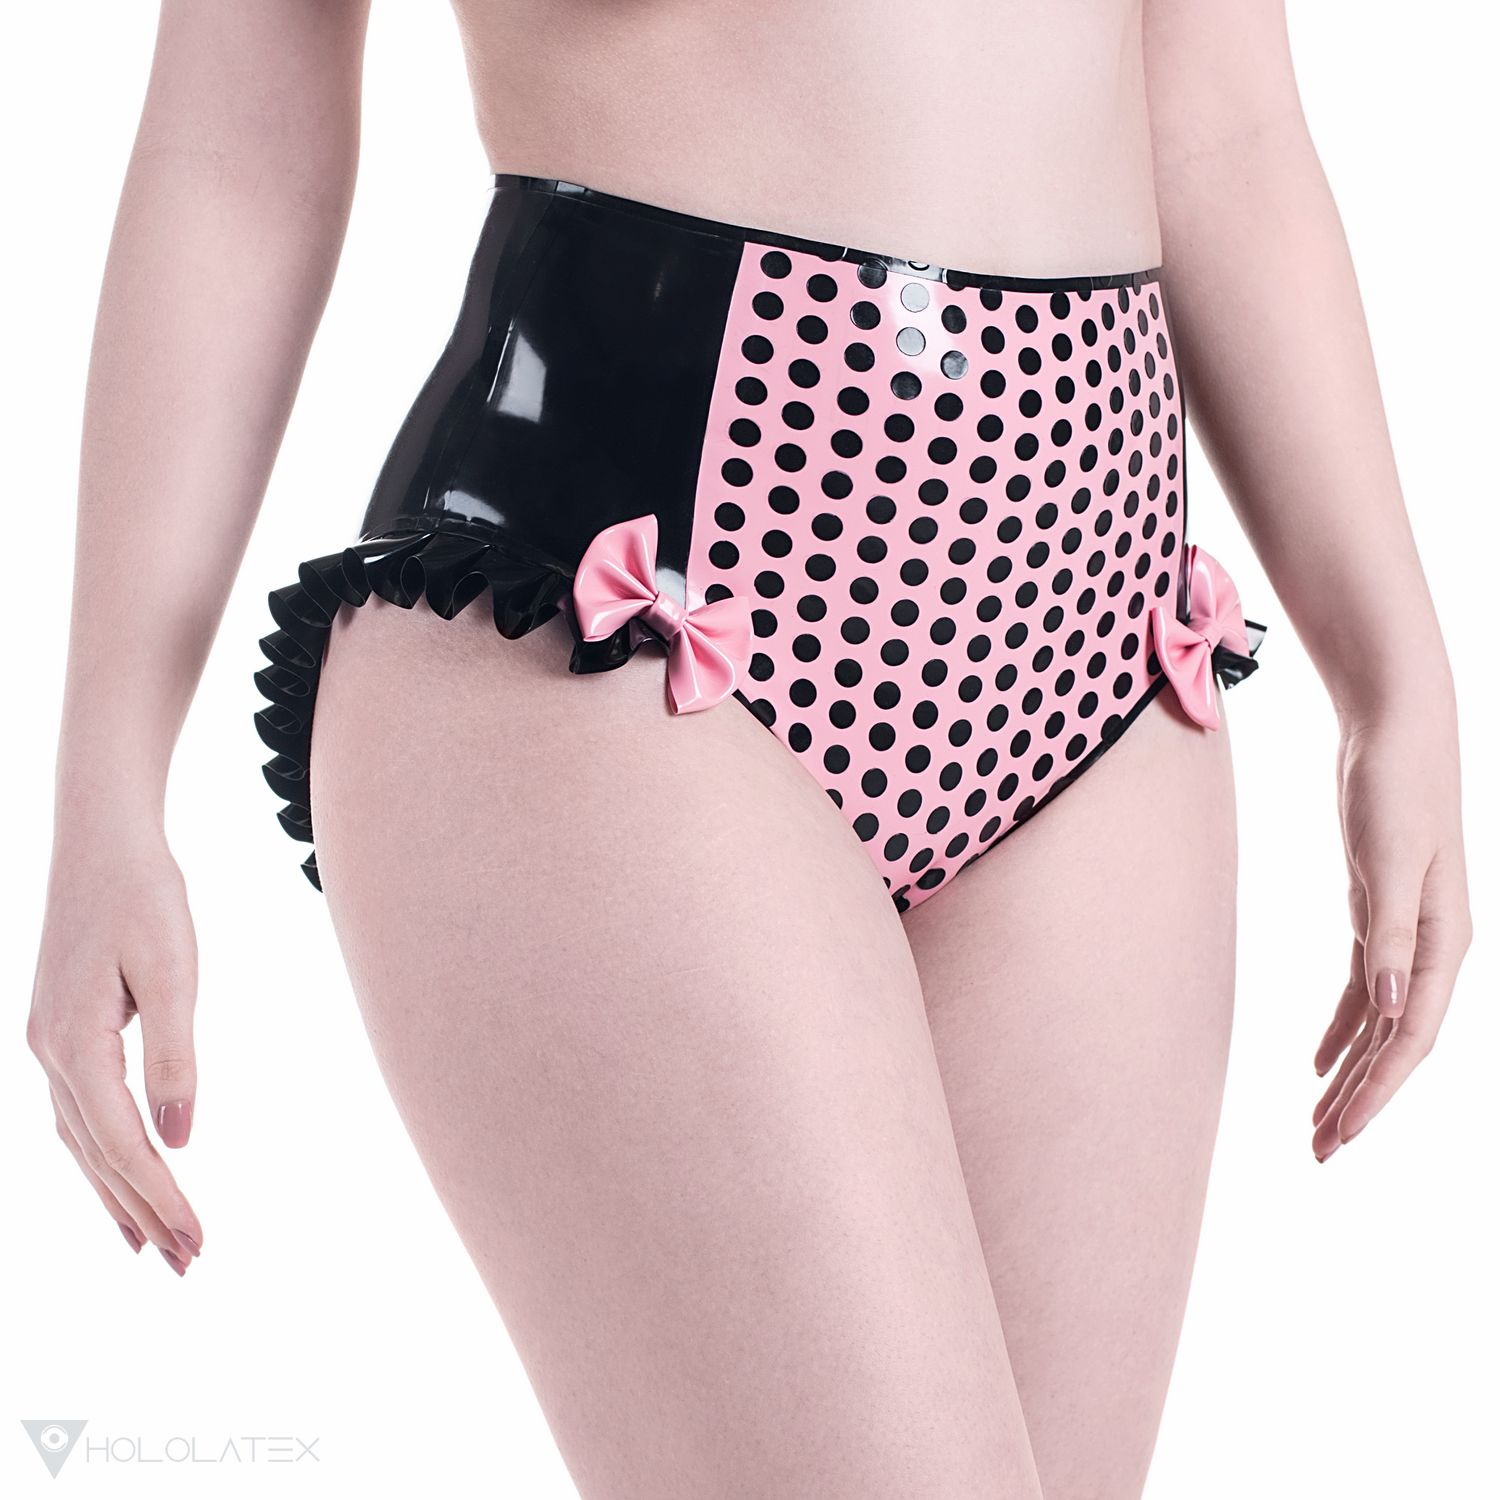 Latex waisted panties with dots and ruffles.